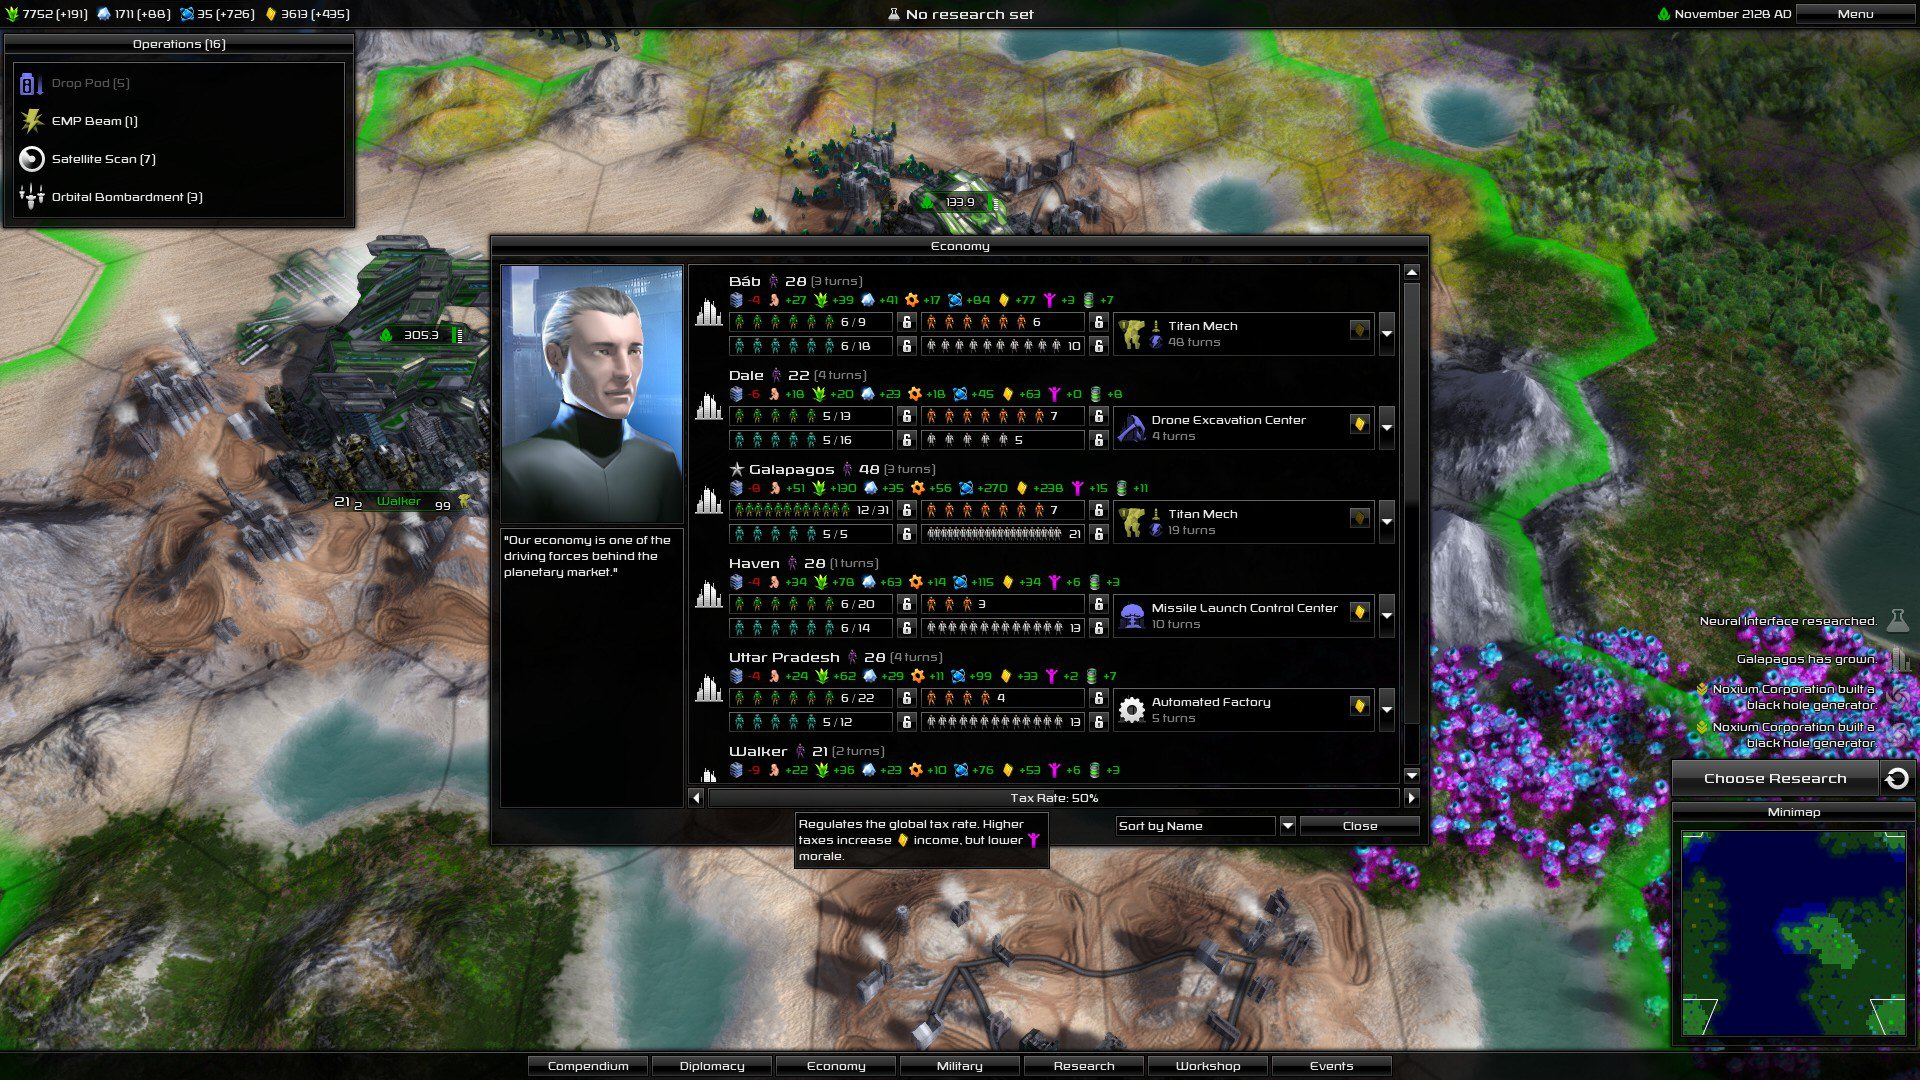 pandora first contact first impressions com pandora first contact economy management screen